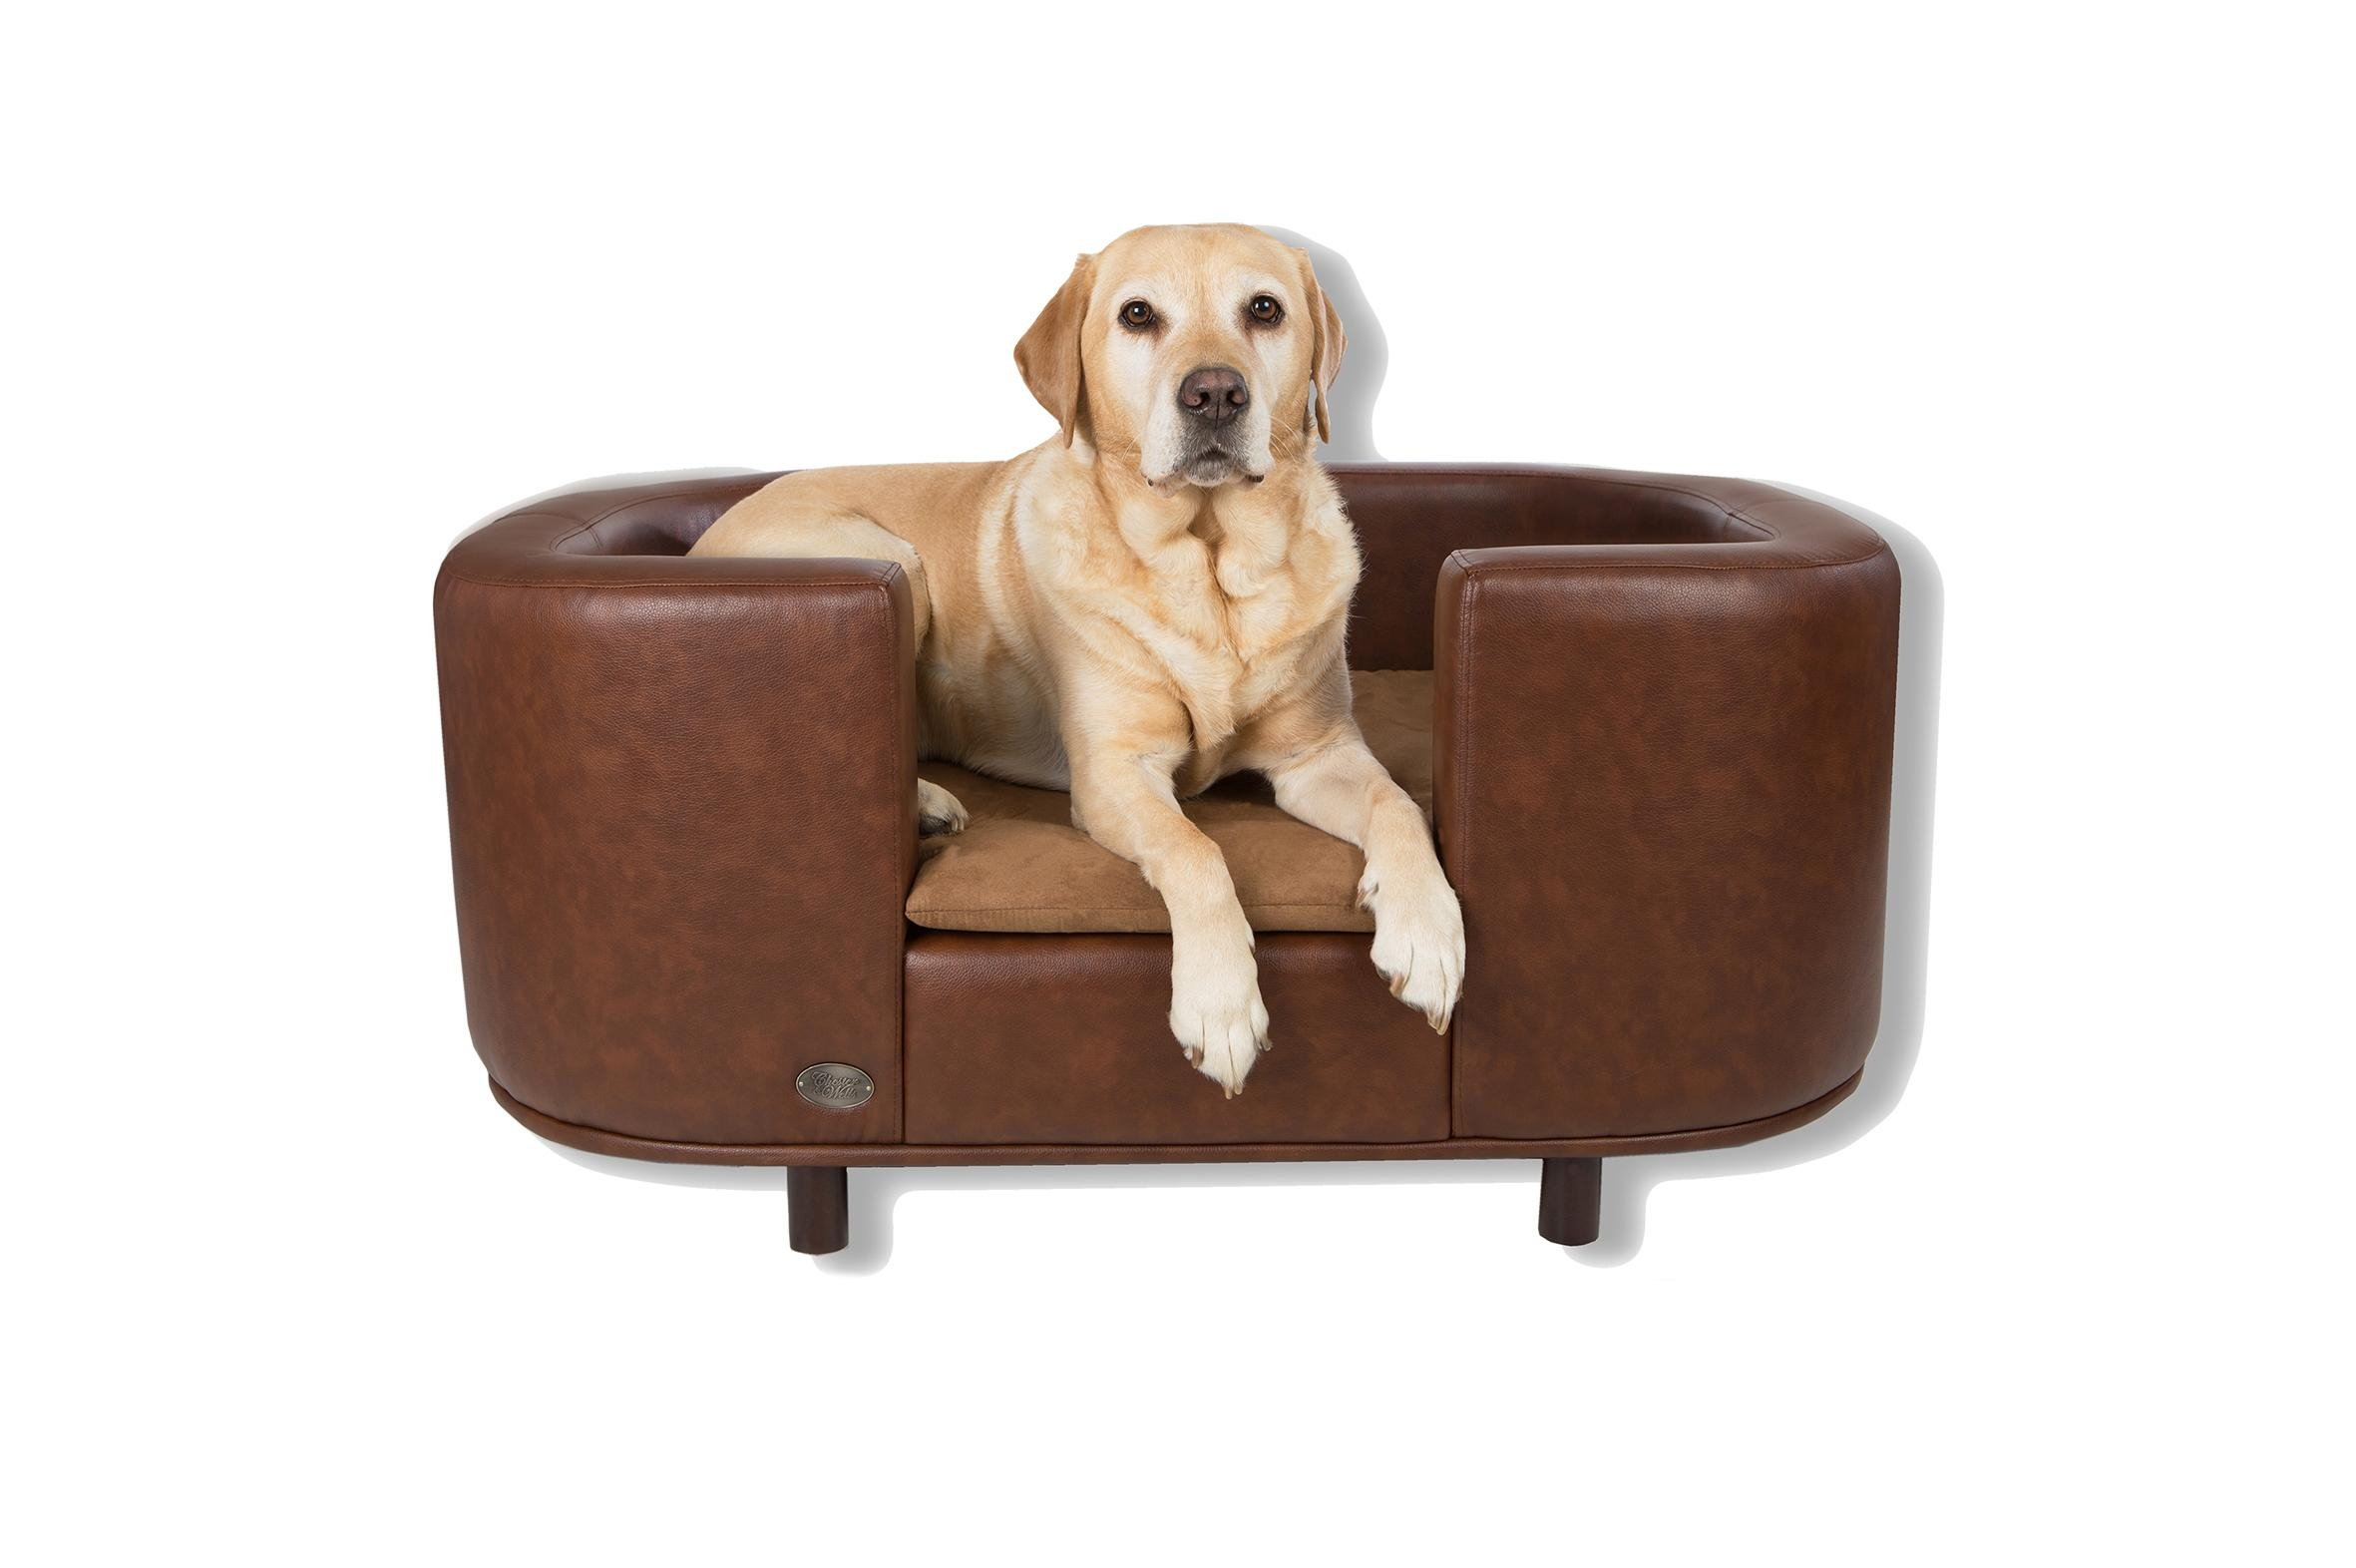 panache dog sofa roche bobois bed 20 43 choices of sofas and chairs ideas